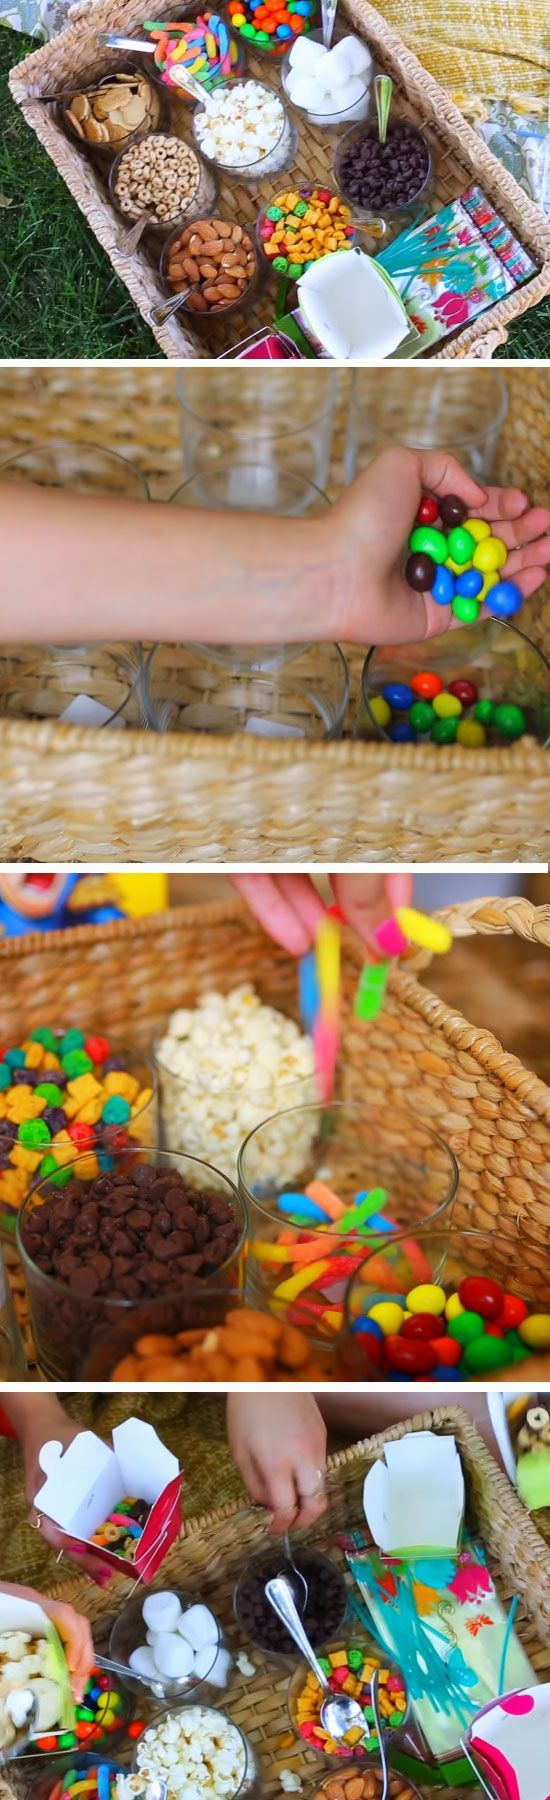 19 DIY Movie Date Night Ideas At Home Summer Backyard PartiesKino